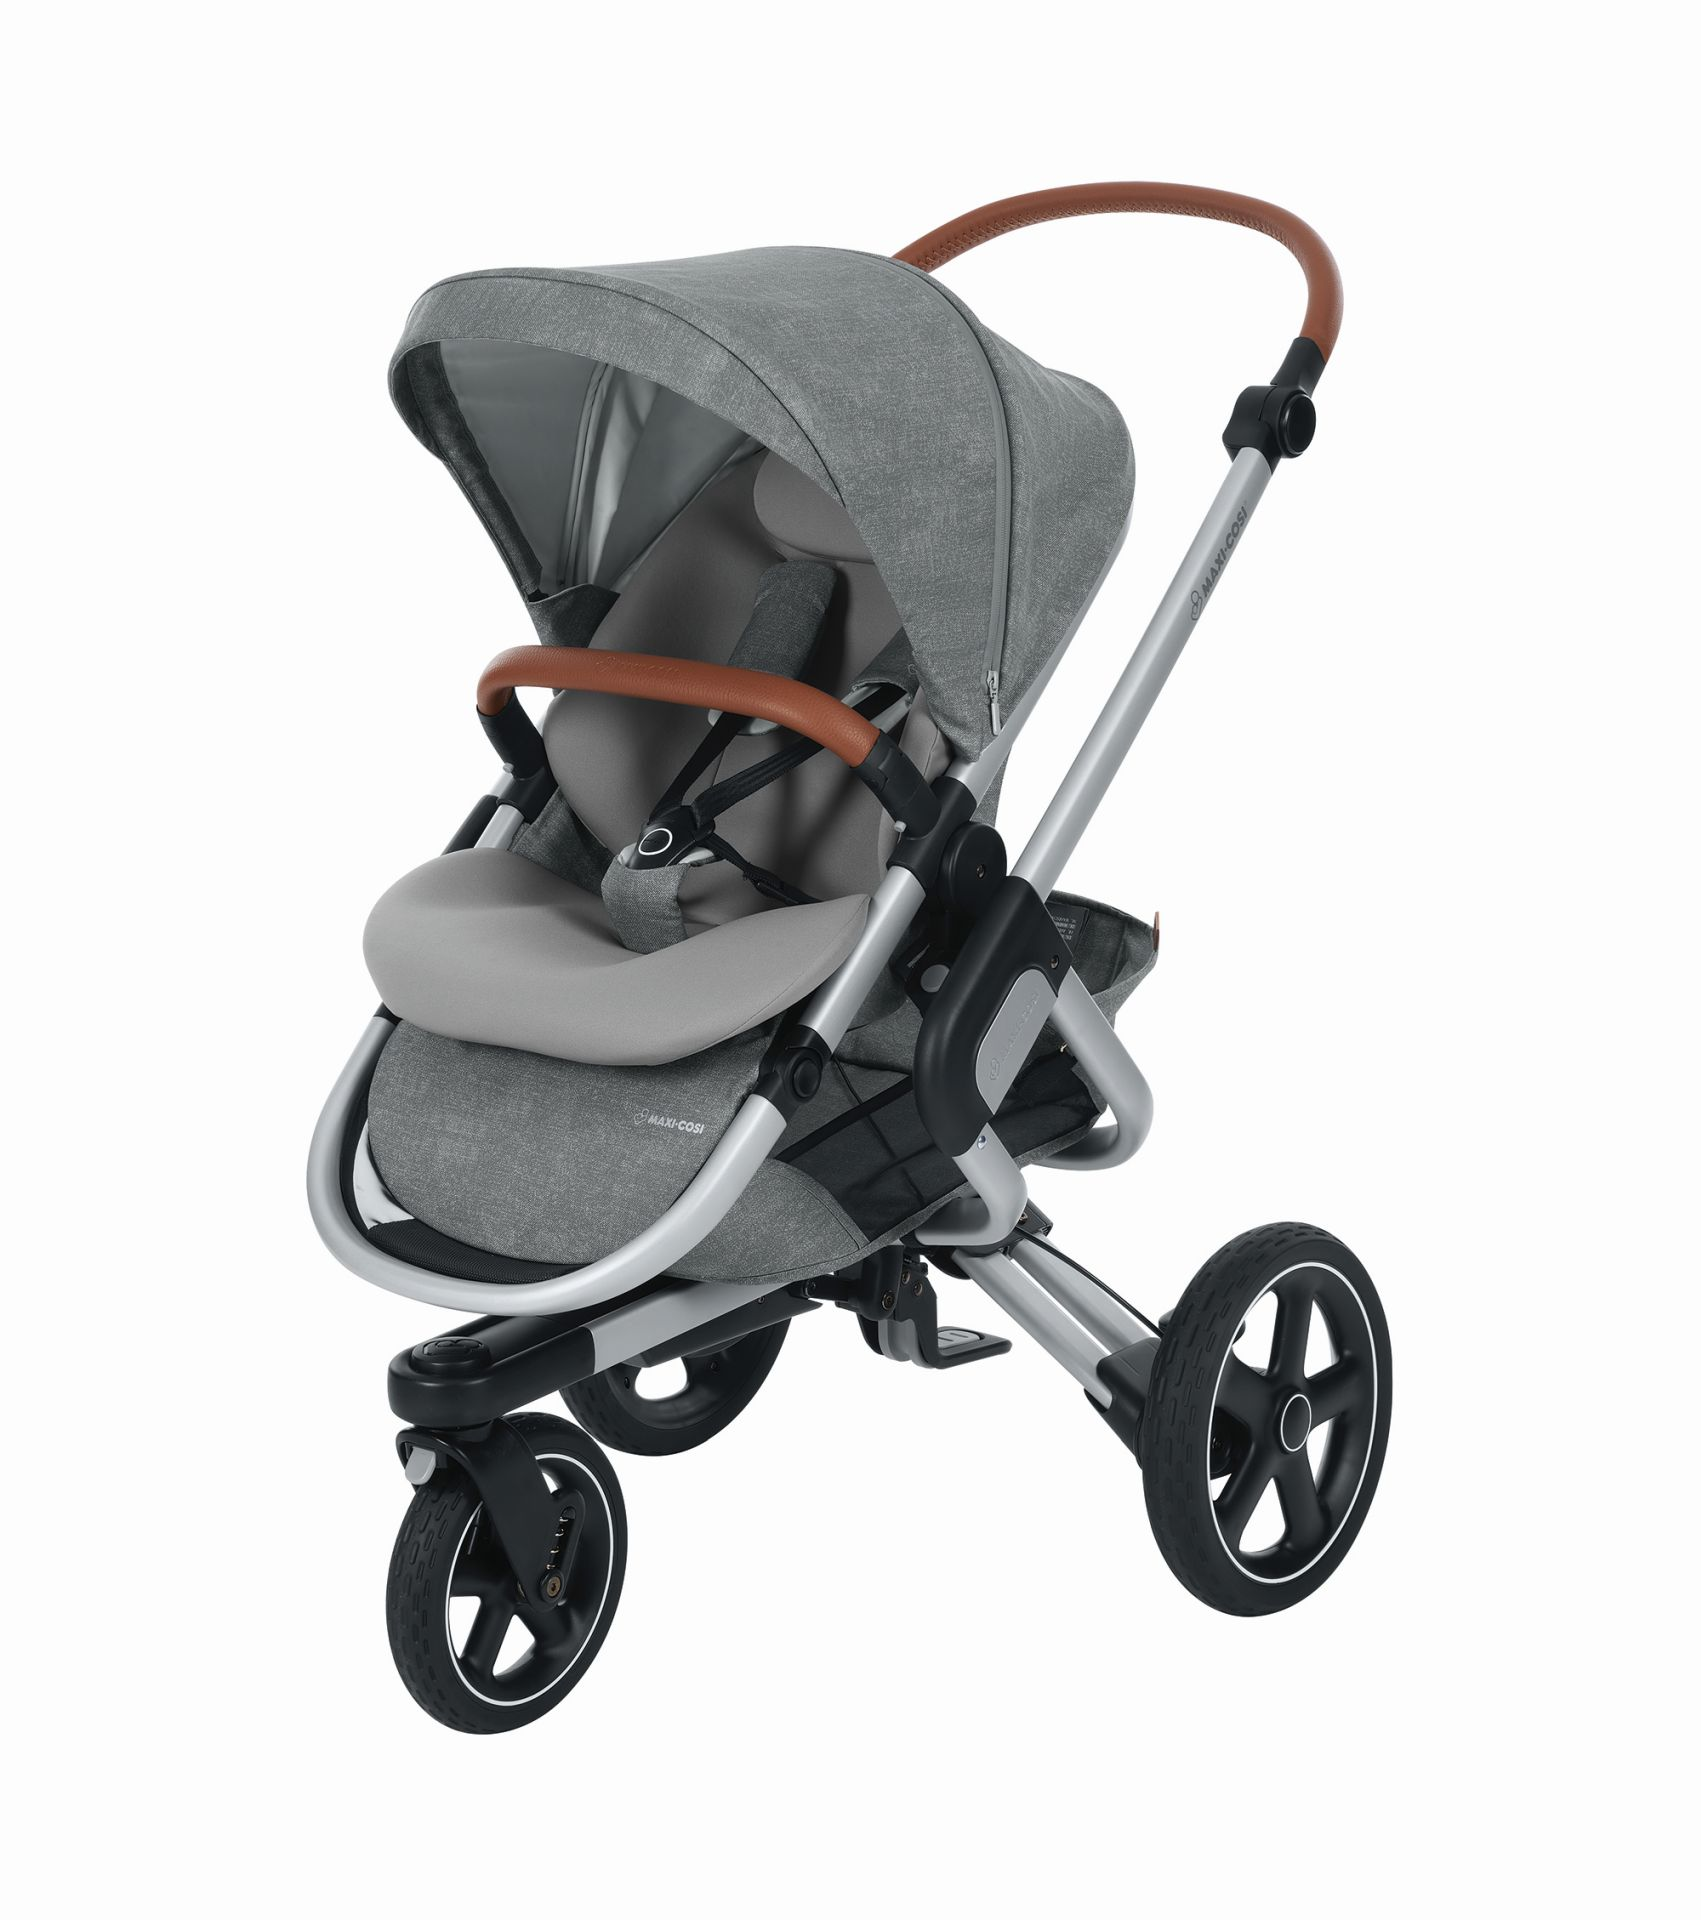 maxi cosi kinderwagen nova 3 rad 2018 nomad grey online. Black Bedroom Furniture Sets. Home Design Ideas